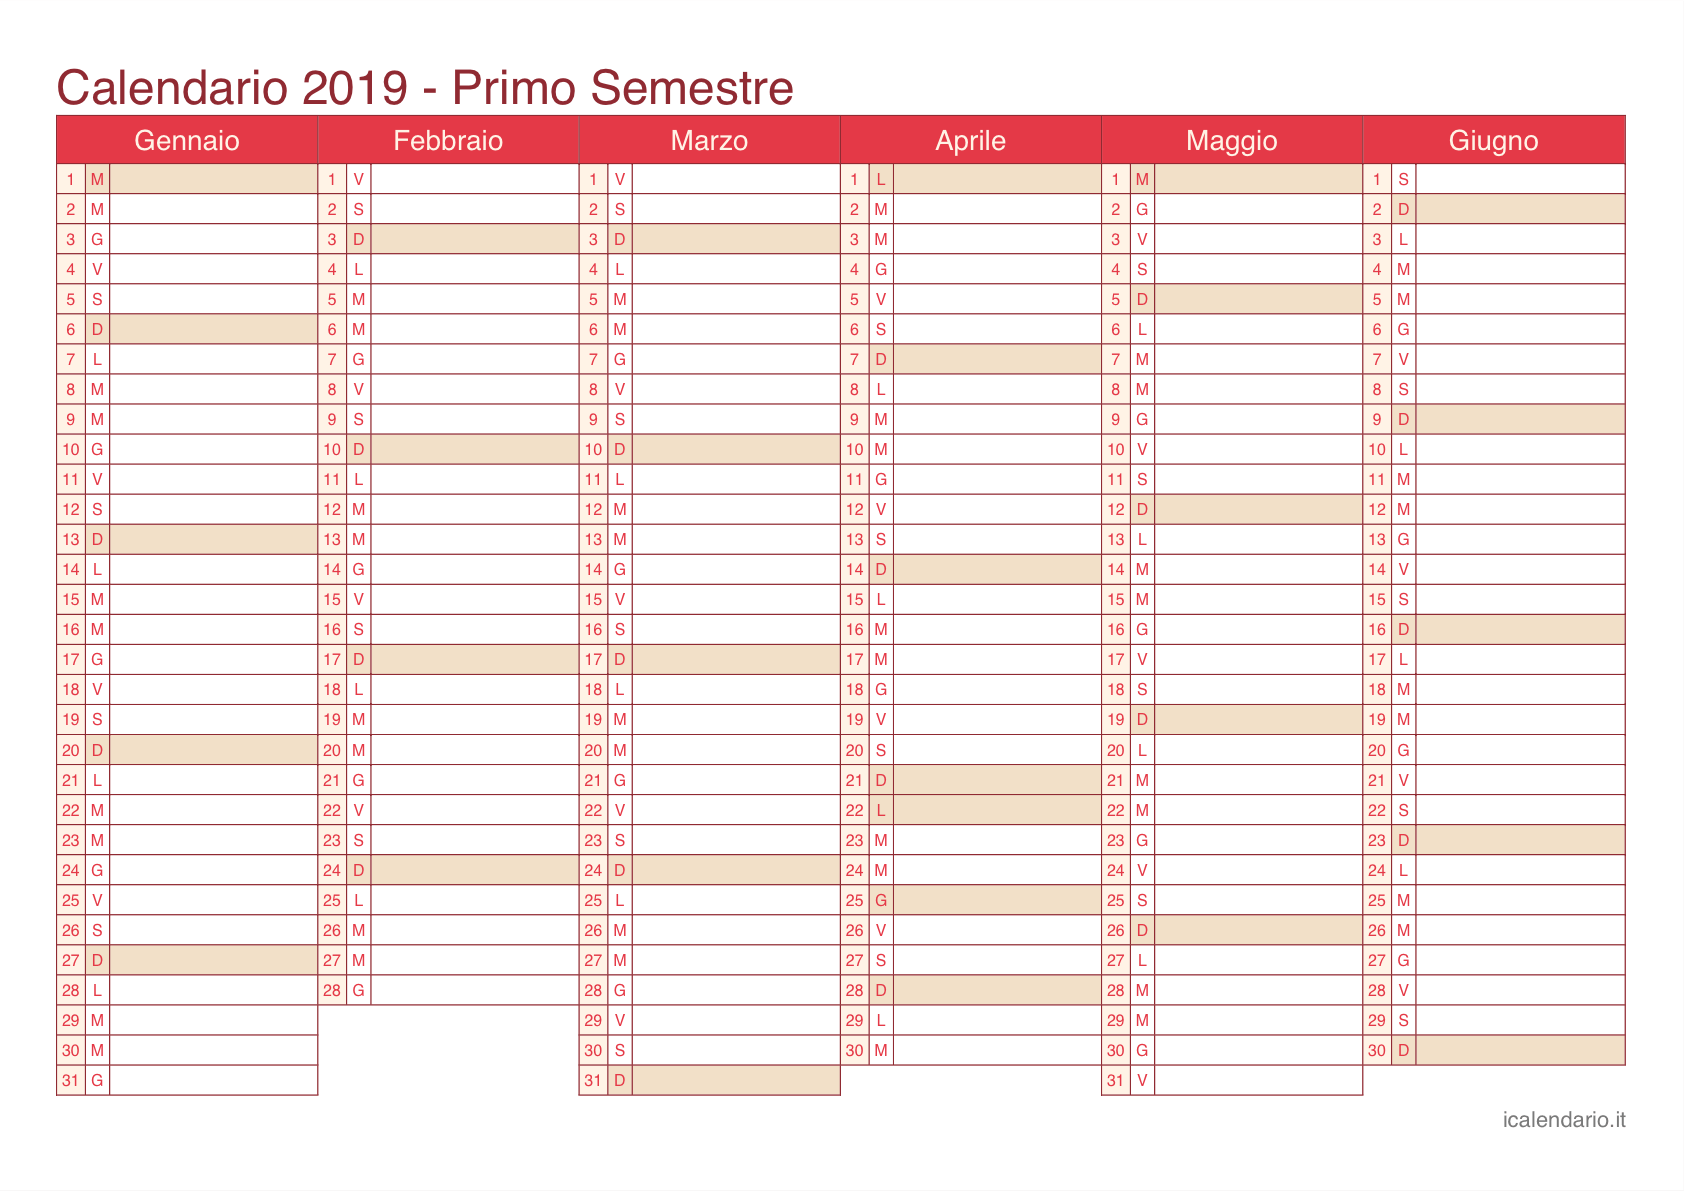 Calendario Anno 2019 Con Festivita.Calendario 2019 Da Stampare Icalendario It